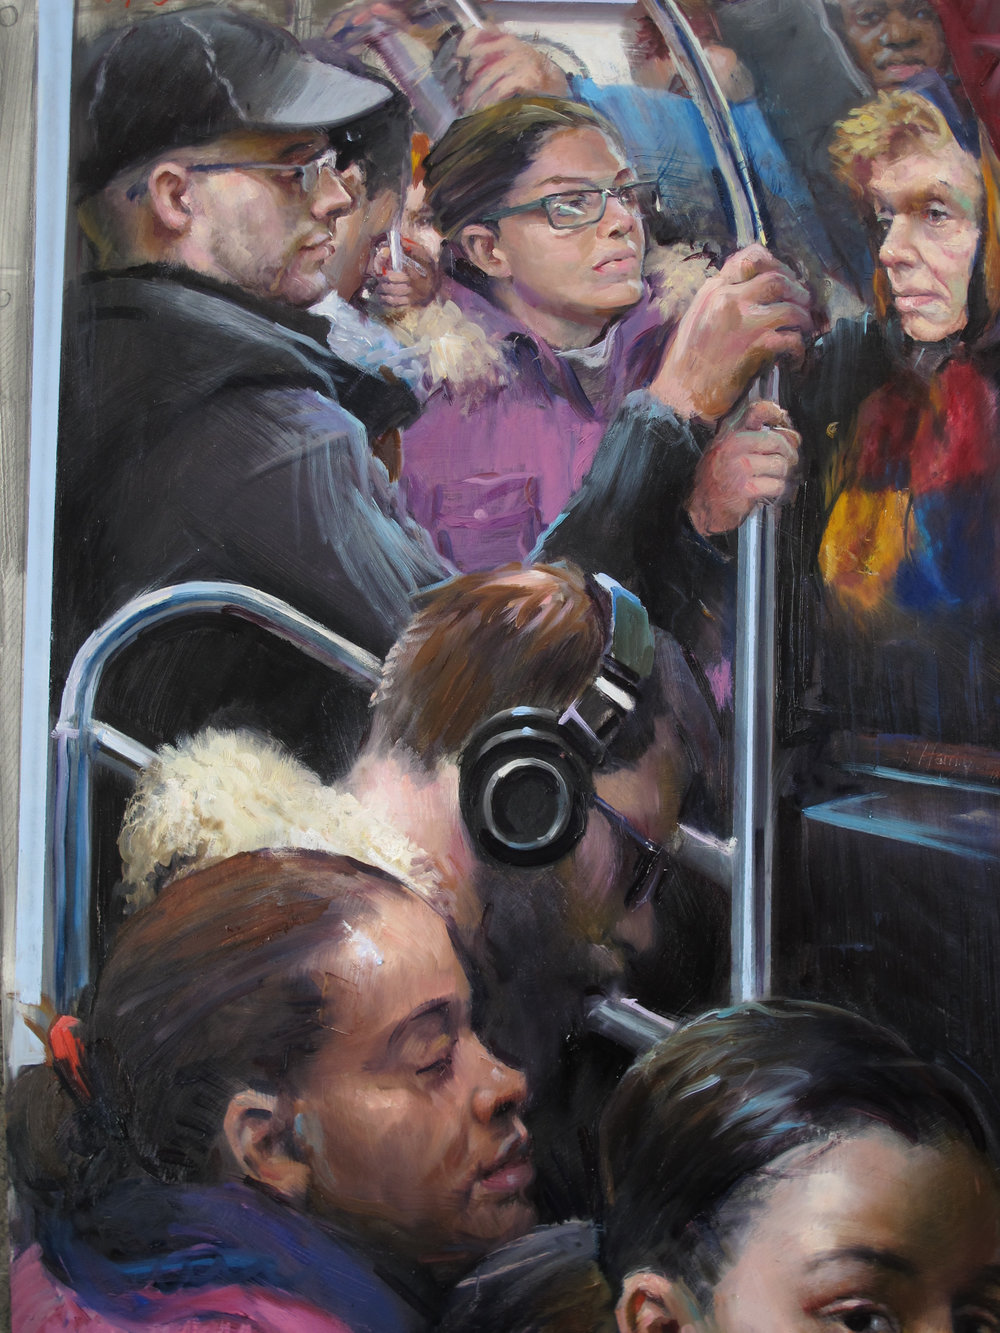 Harrington J. Crowded E Train.jpg